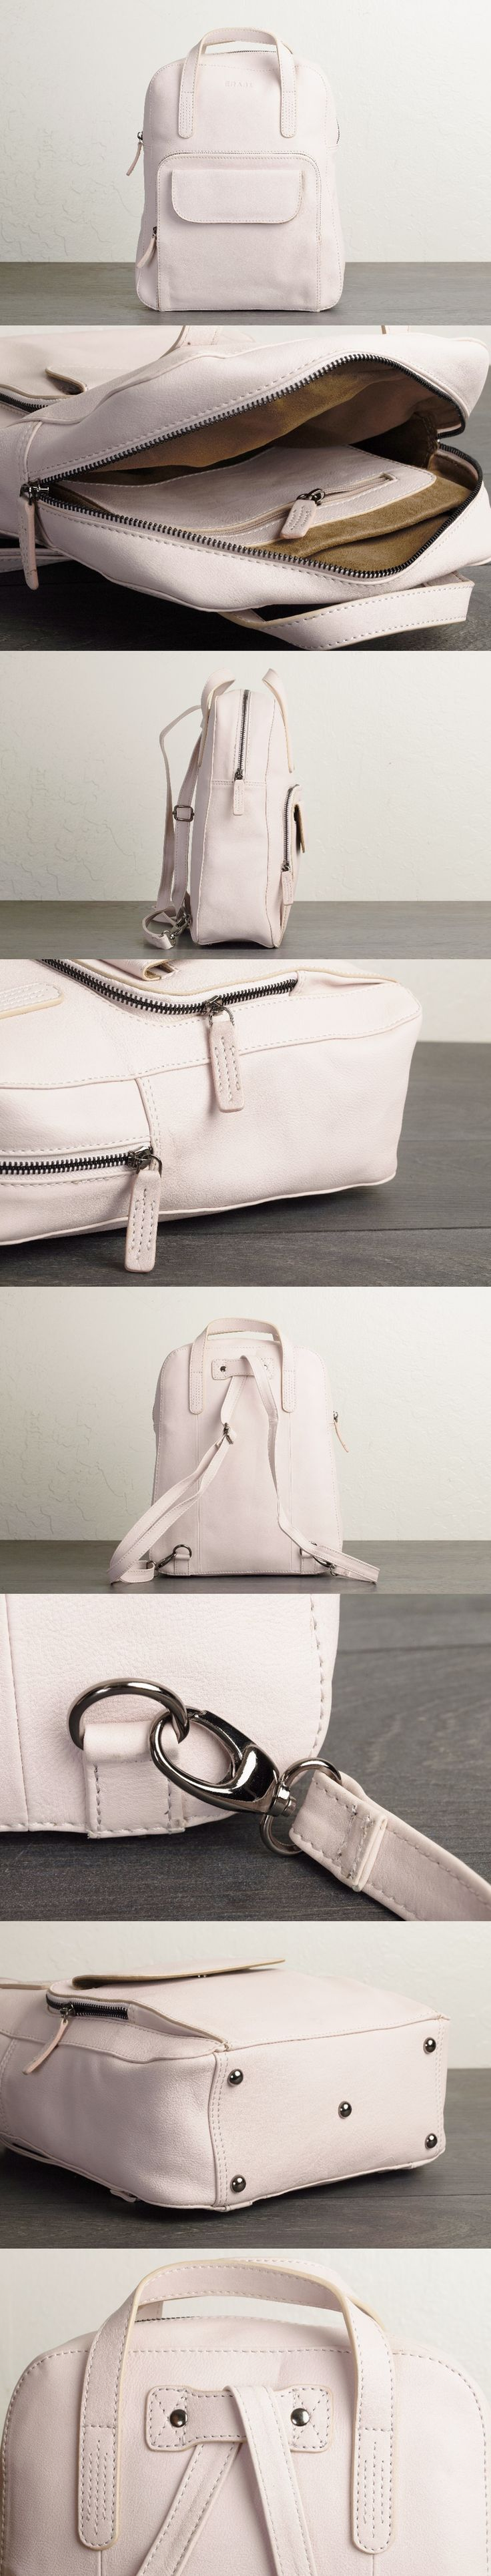 Stunning convertible #backpack purse by #TheLeatherExpert that transitions into an elegant handbag with just a quick adjustment of the removable shoulder strap.